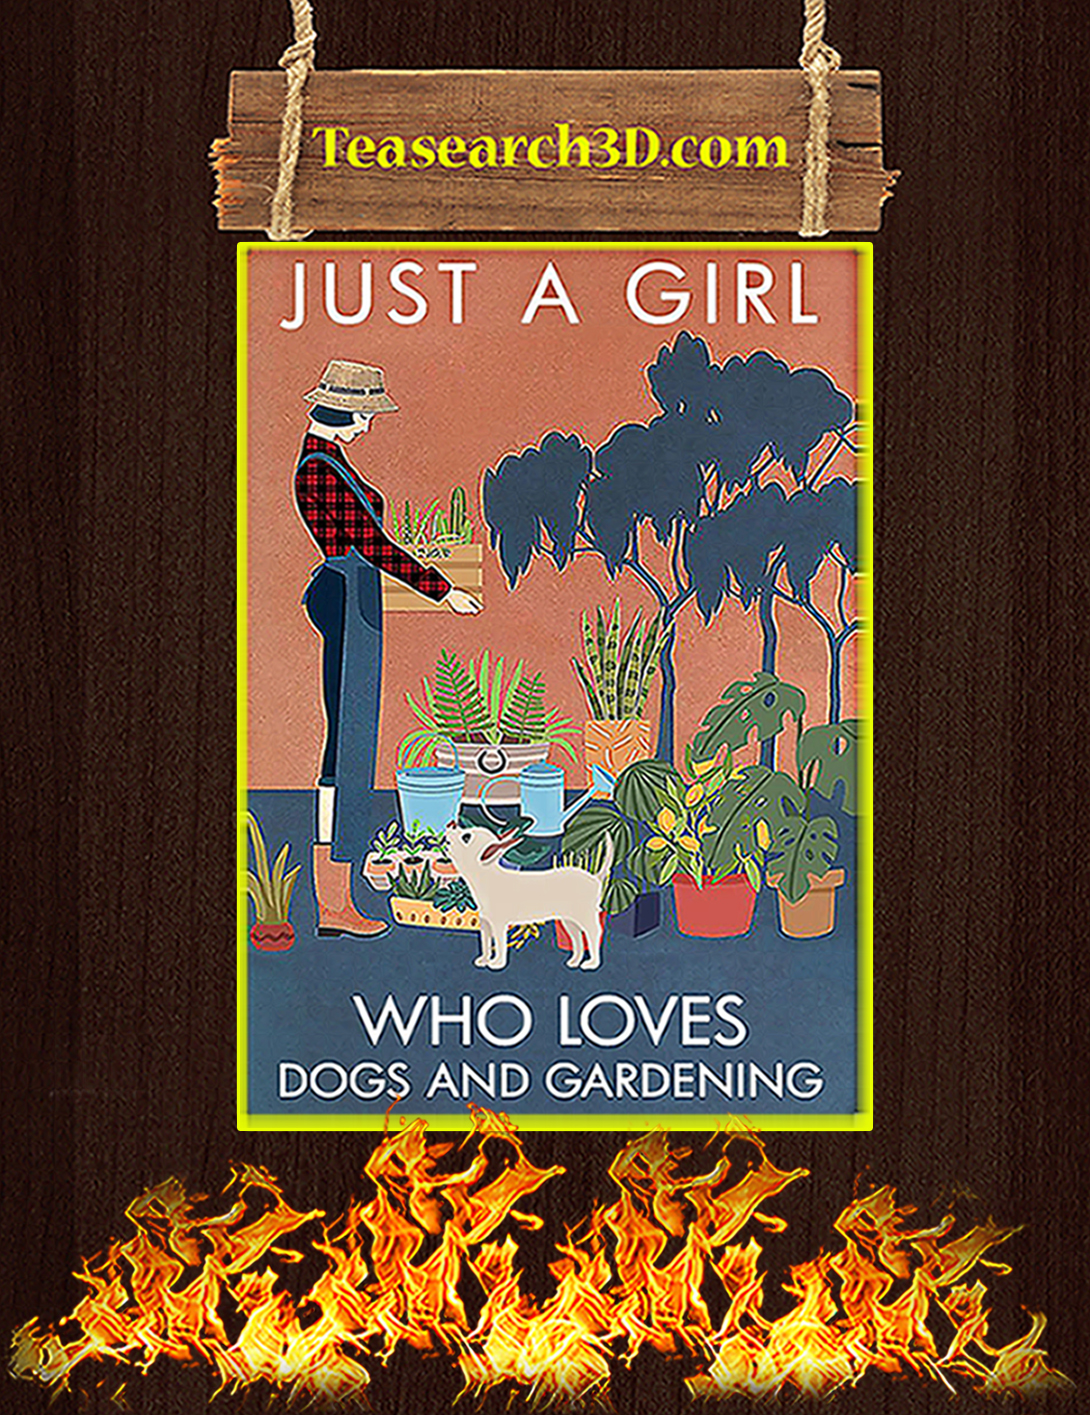 Just a girl who love dogs and gardening poster A2